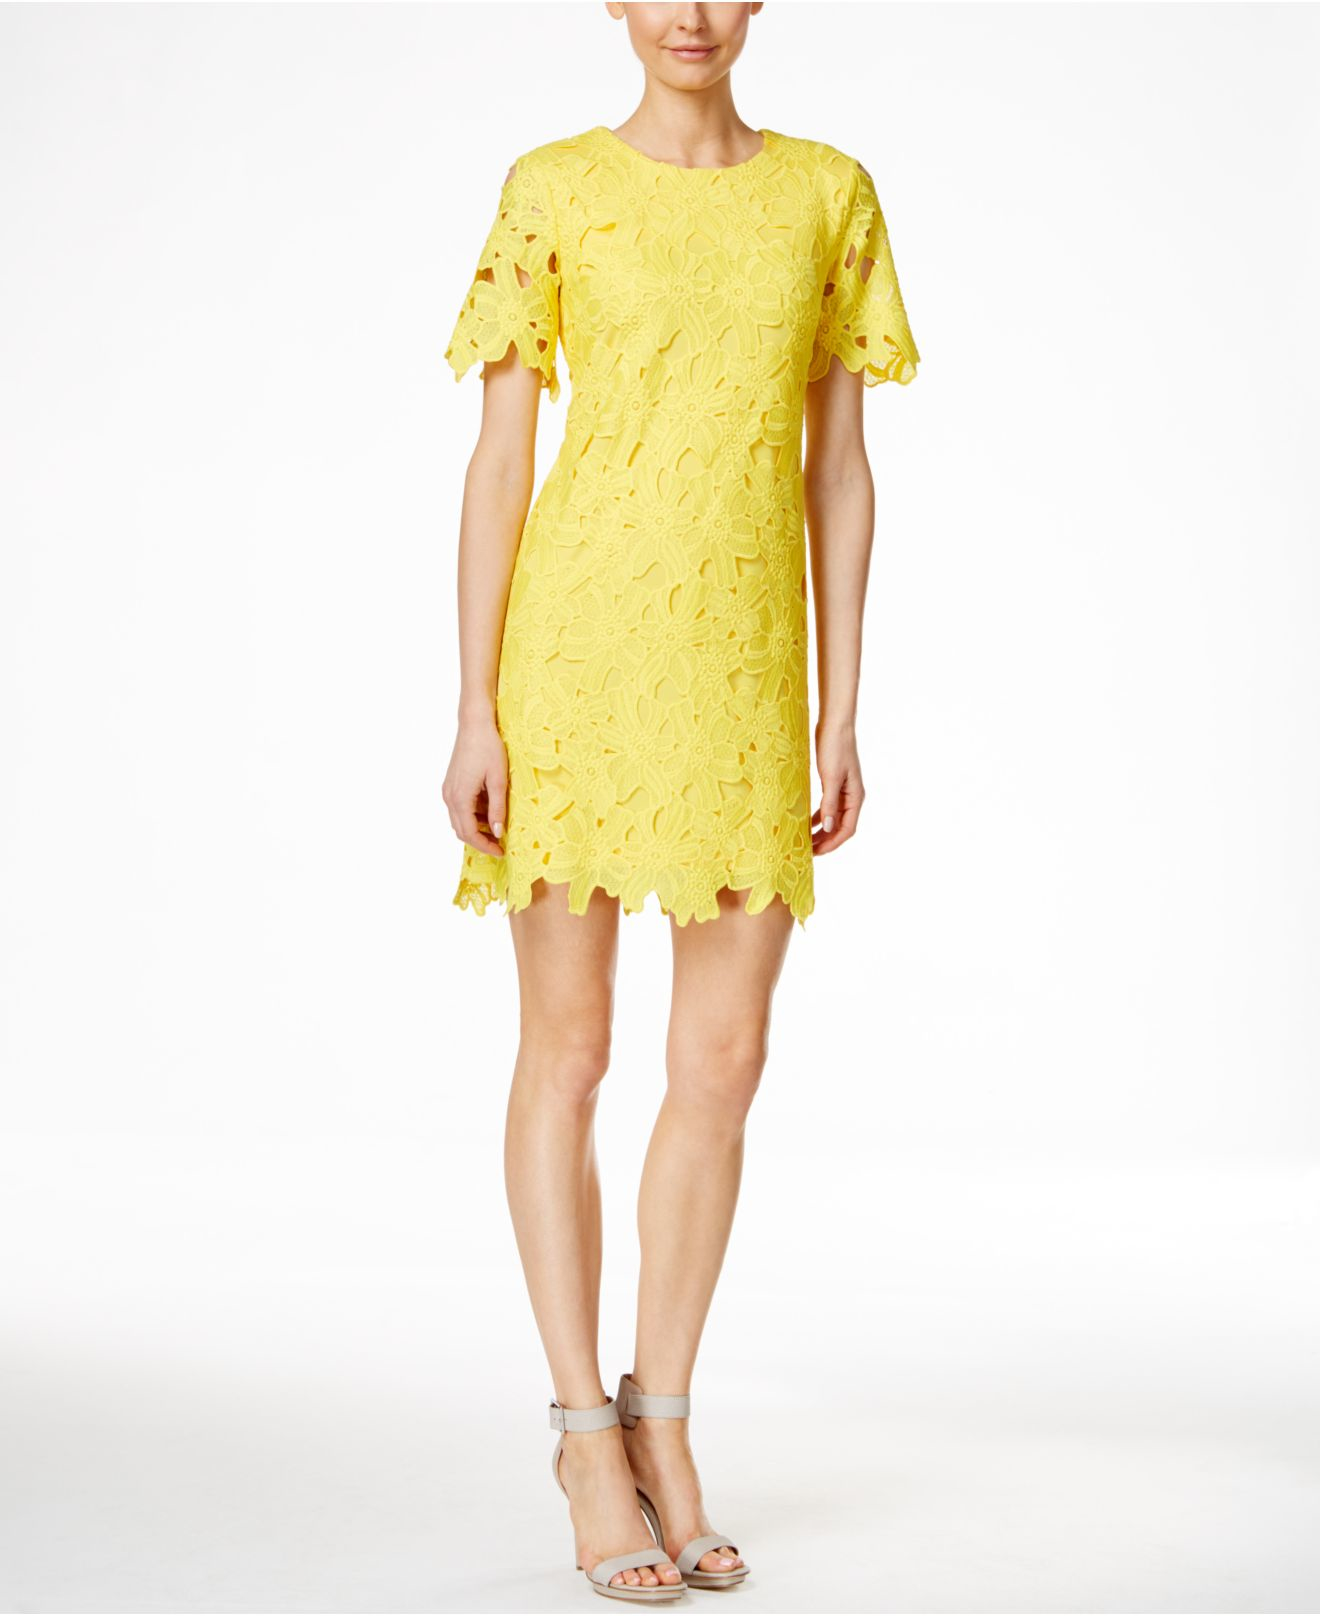 9ef13a5f4f84 Lyst - Calvin Klein Short-sleeve Lace Sheath Dress in Yellow